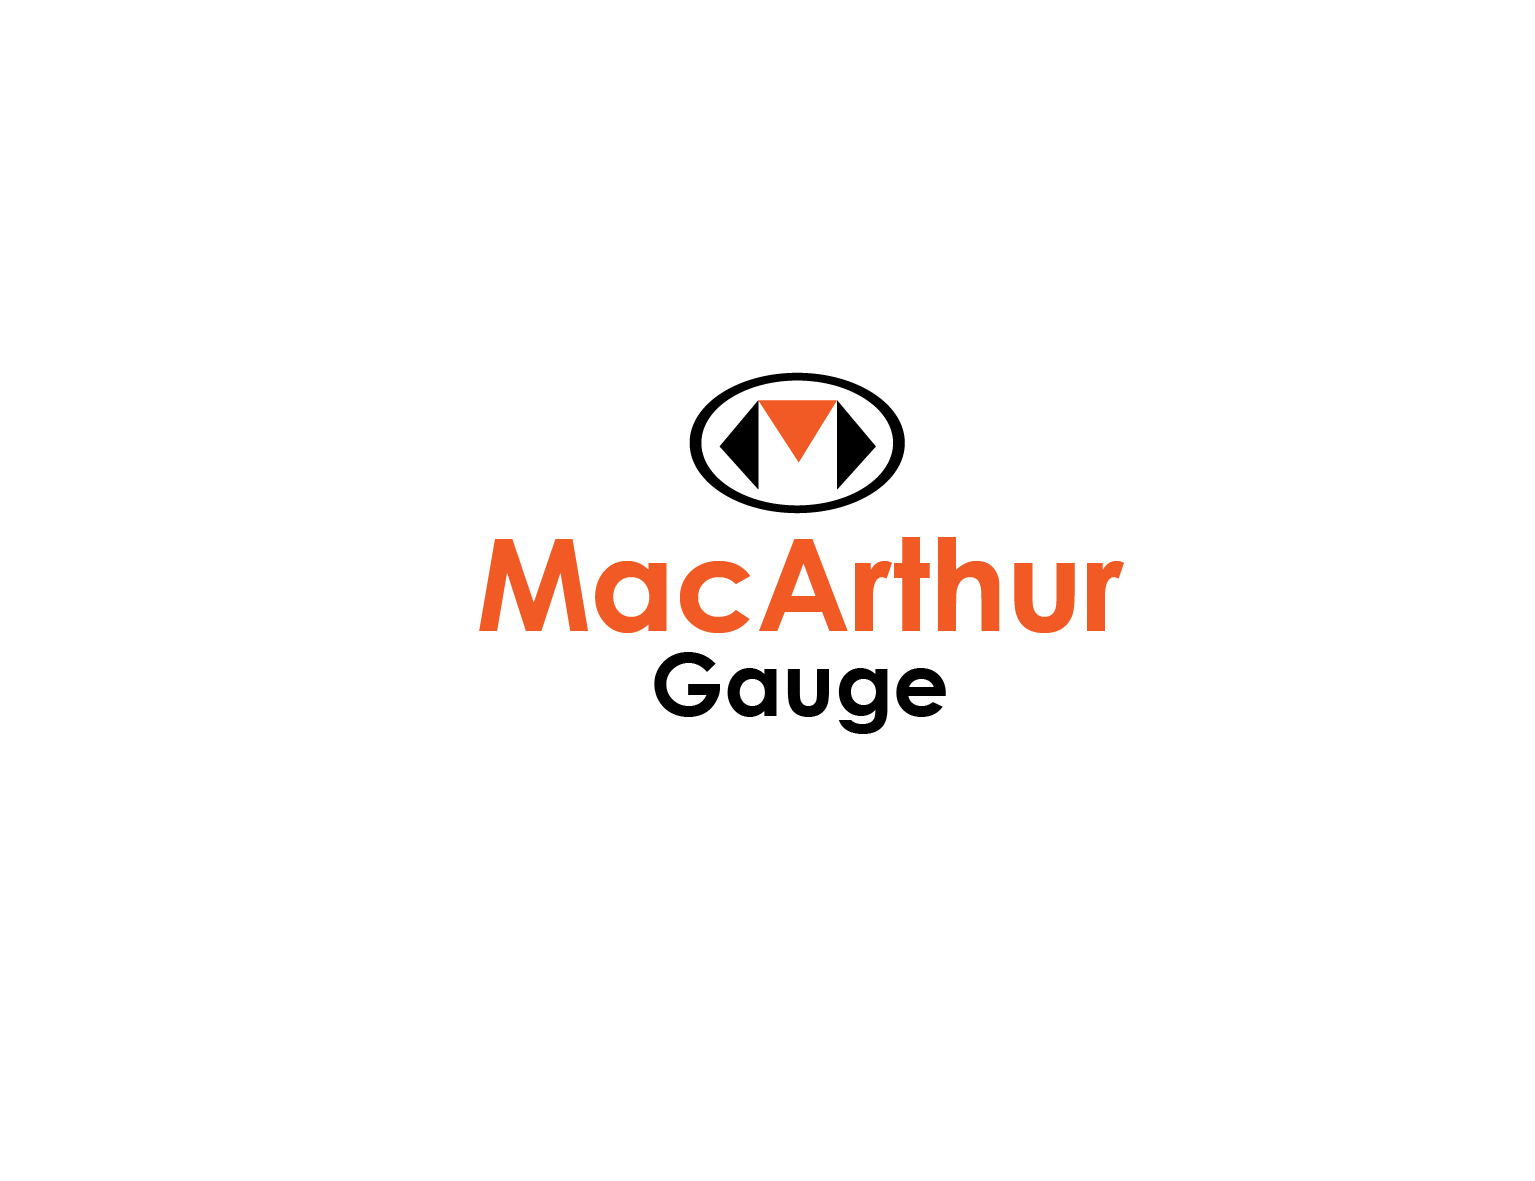 Logo Design by 3draw - Entry No. 170 in the Logo Design Contest Fun Logo Design for MacArthur Gauge.